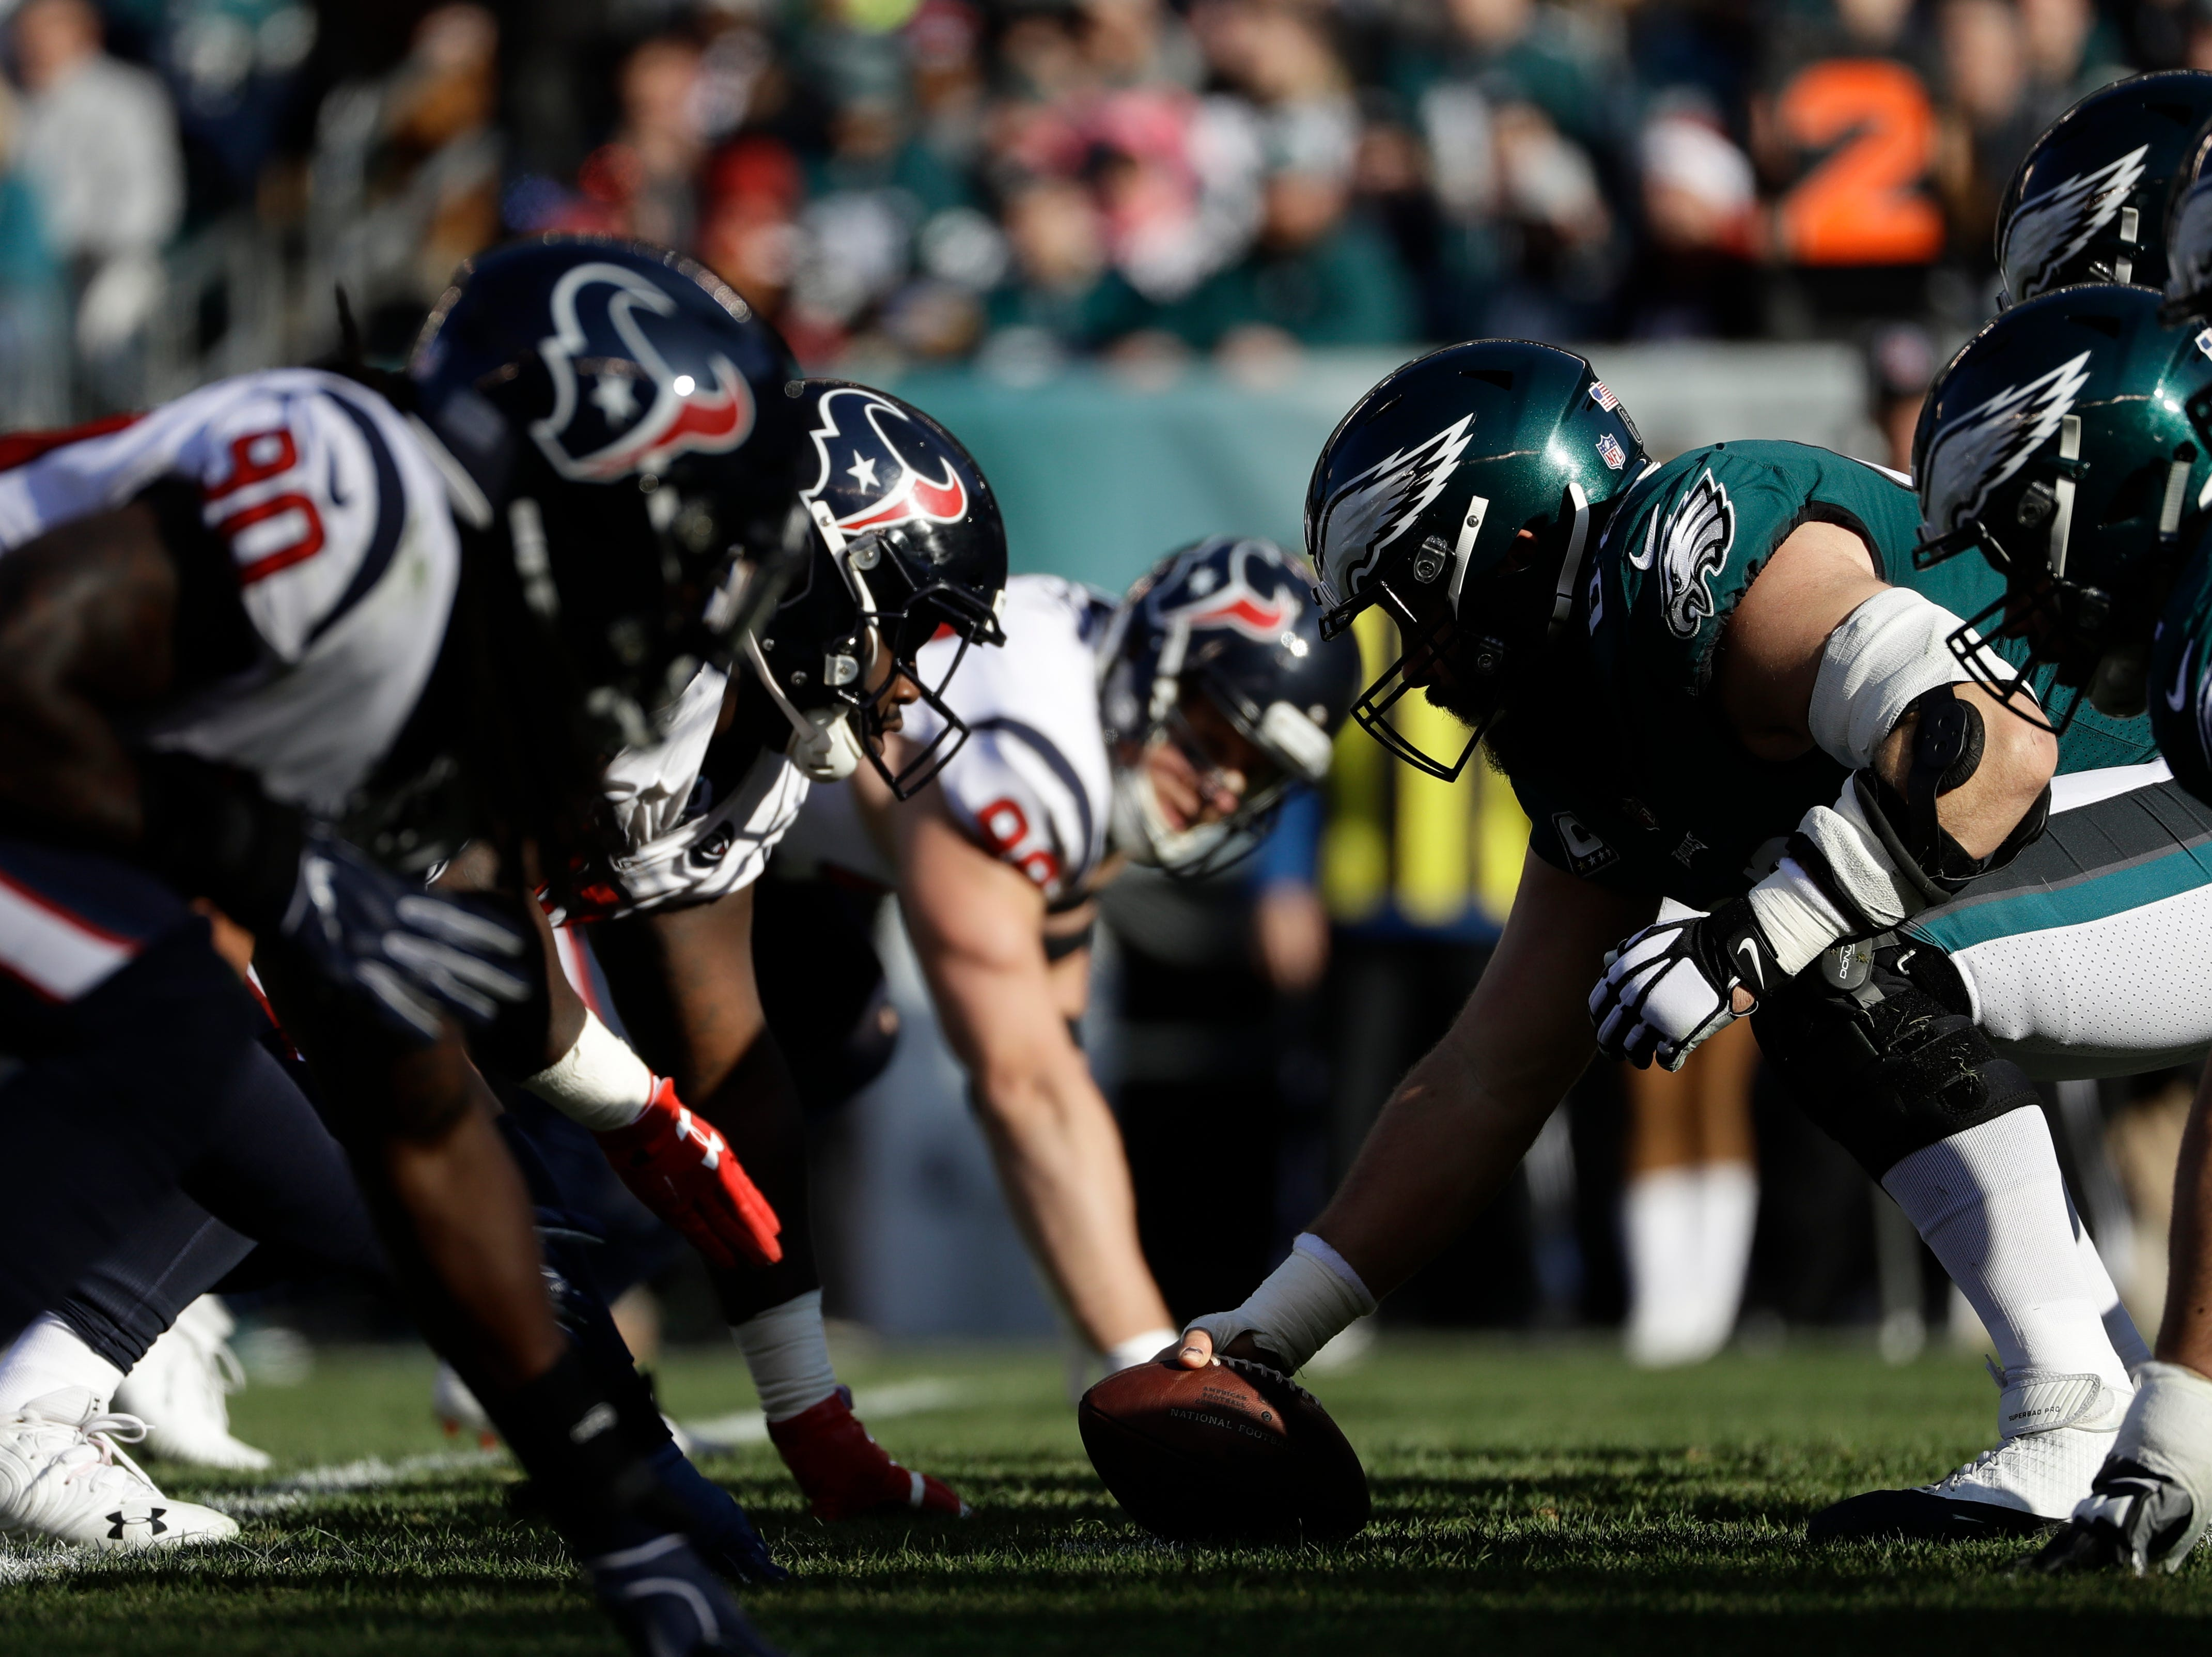 Philadelphia Eagles' Jason Kelce lines up to snap during the first half of an NFL football game against the Houston Texans, Sunday, Dec. 23, 2018, in Philadelphia. (AP Photo/Michael Perez)